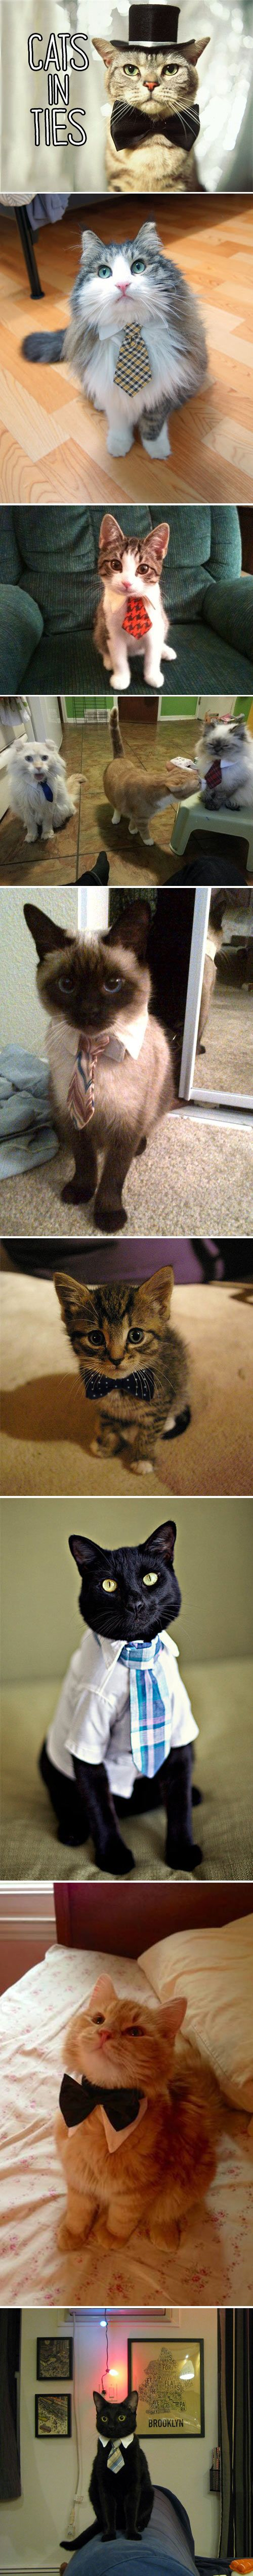 Gah! Now I wanna get a boy kitty so I can put ties and bow ties on him.  So dapper!